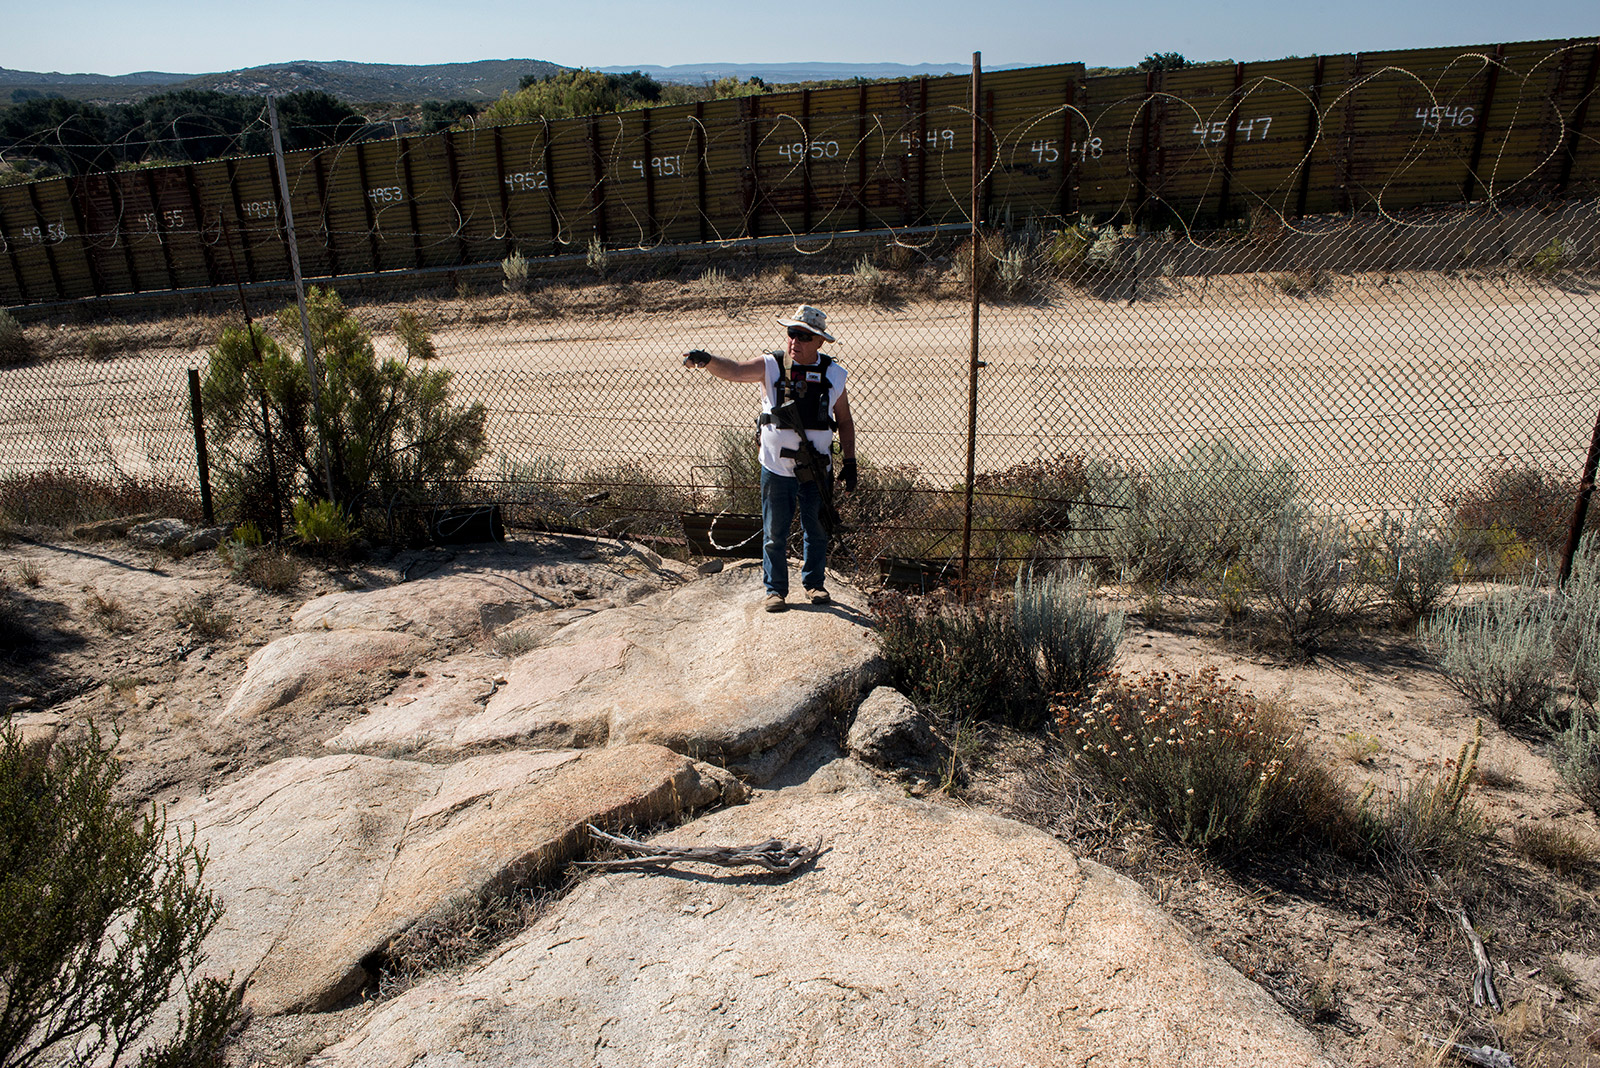 The only barrier between Bob Maupin's 250-acre ranch in Boulevard and Mexico is corrugated steel built by the government and a 10-foot-tall barbed wire fence that he built over five years. Maupin, shown on Aug. 30, 2017, patrolling his land with a weapon in-hand, said drug and human smugglers often cut through the fencing to enter the U.S. illegally. <em>(Brandon Quester/inewsource)</em>